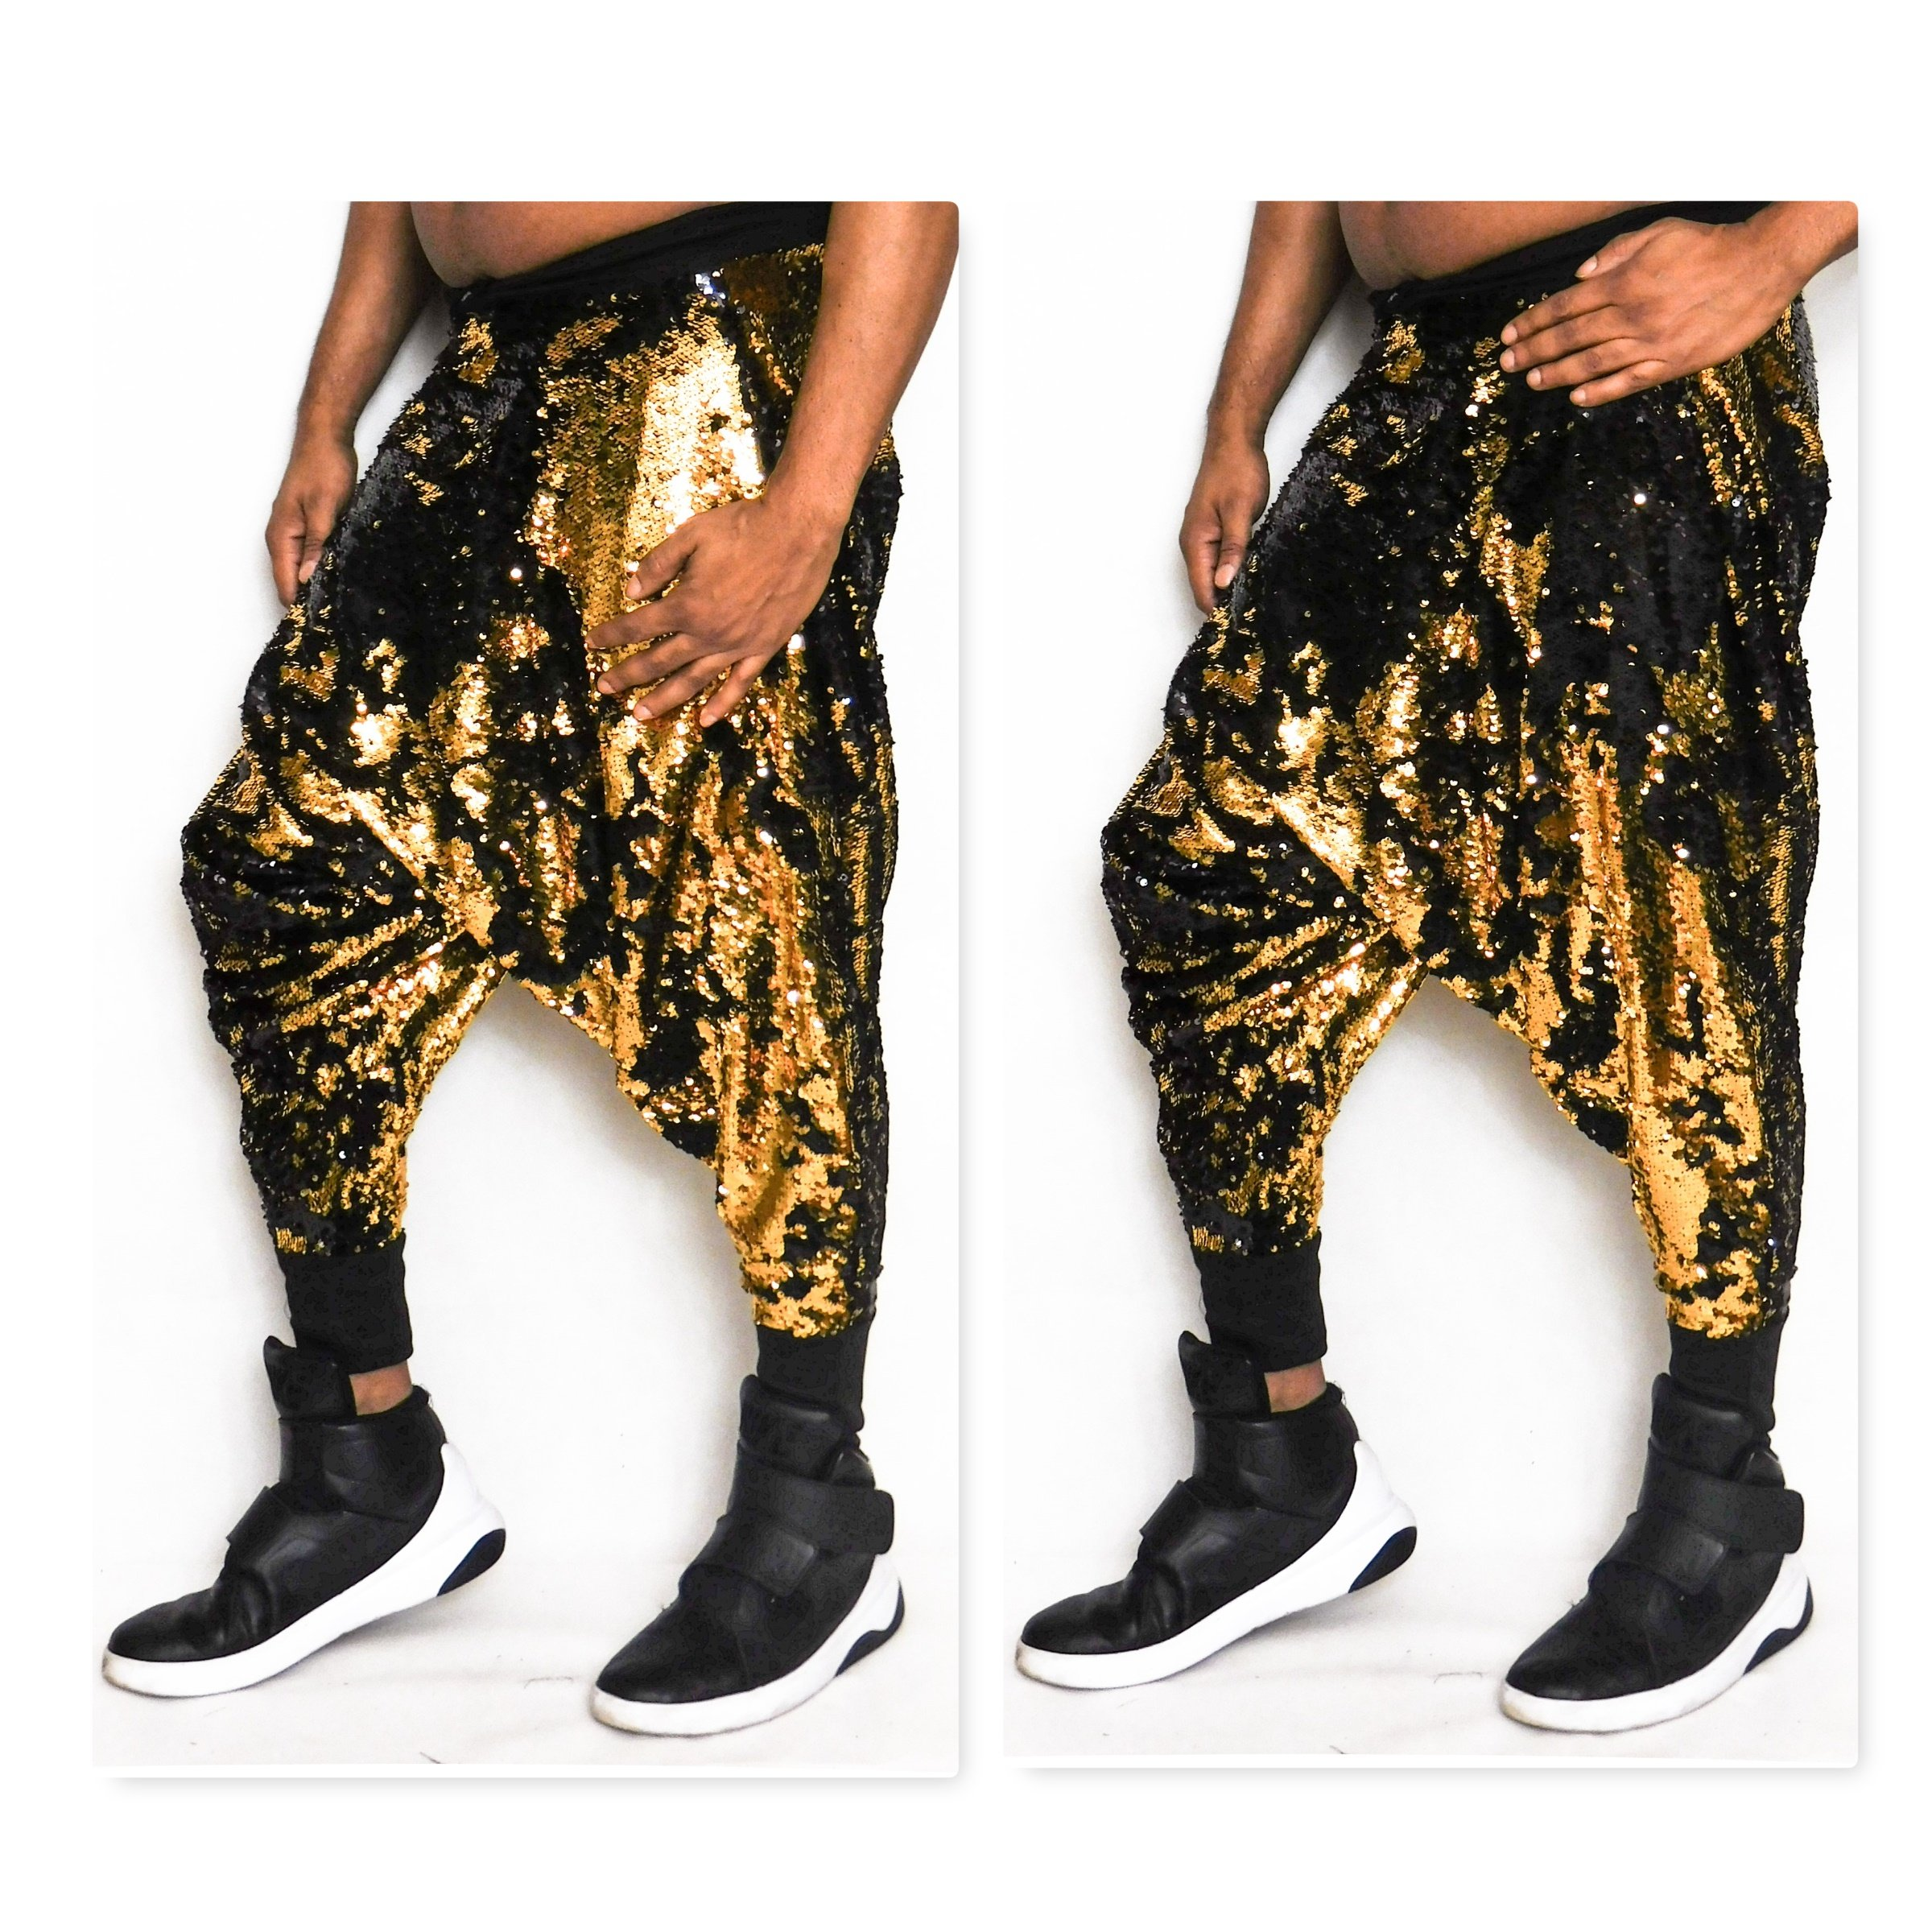 Reversible Sequin Harem Pant Jogger Gold to Black Color Changes When brushed to change color Brush Sequins